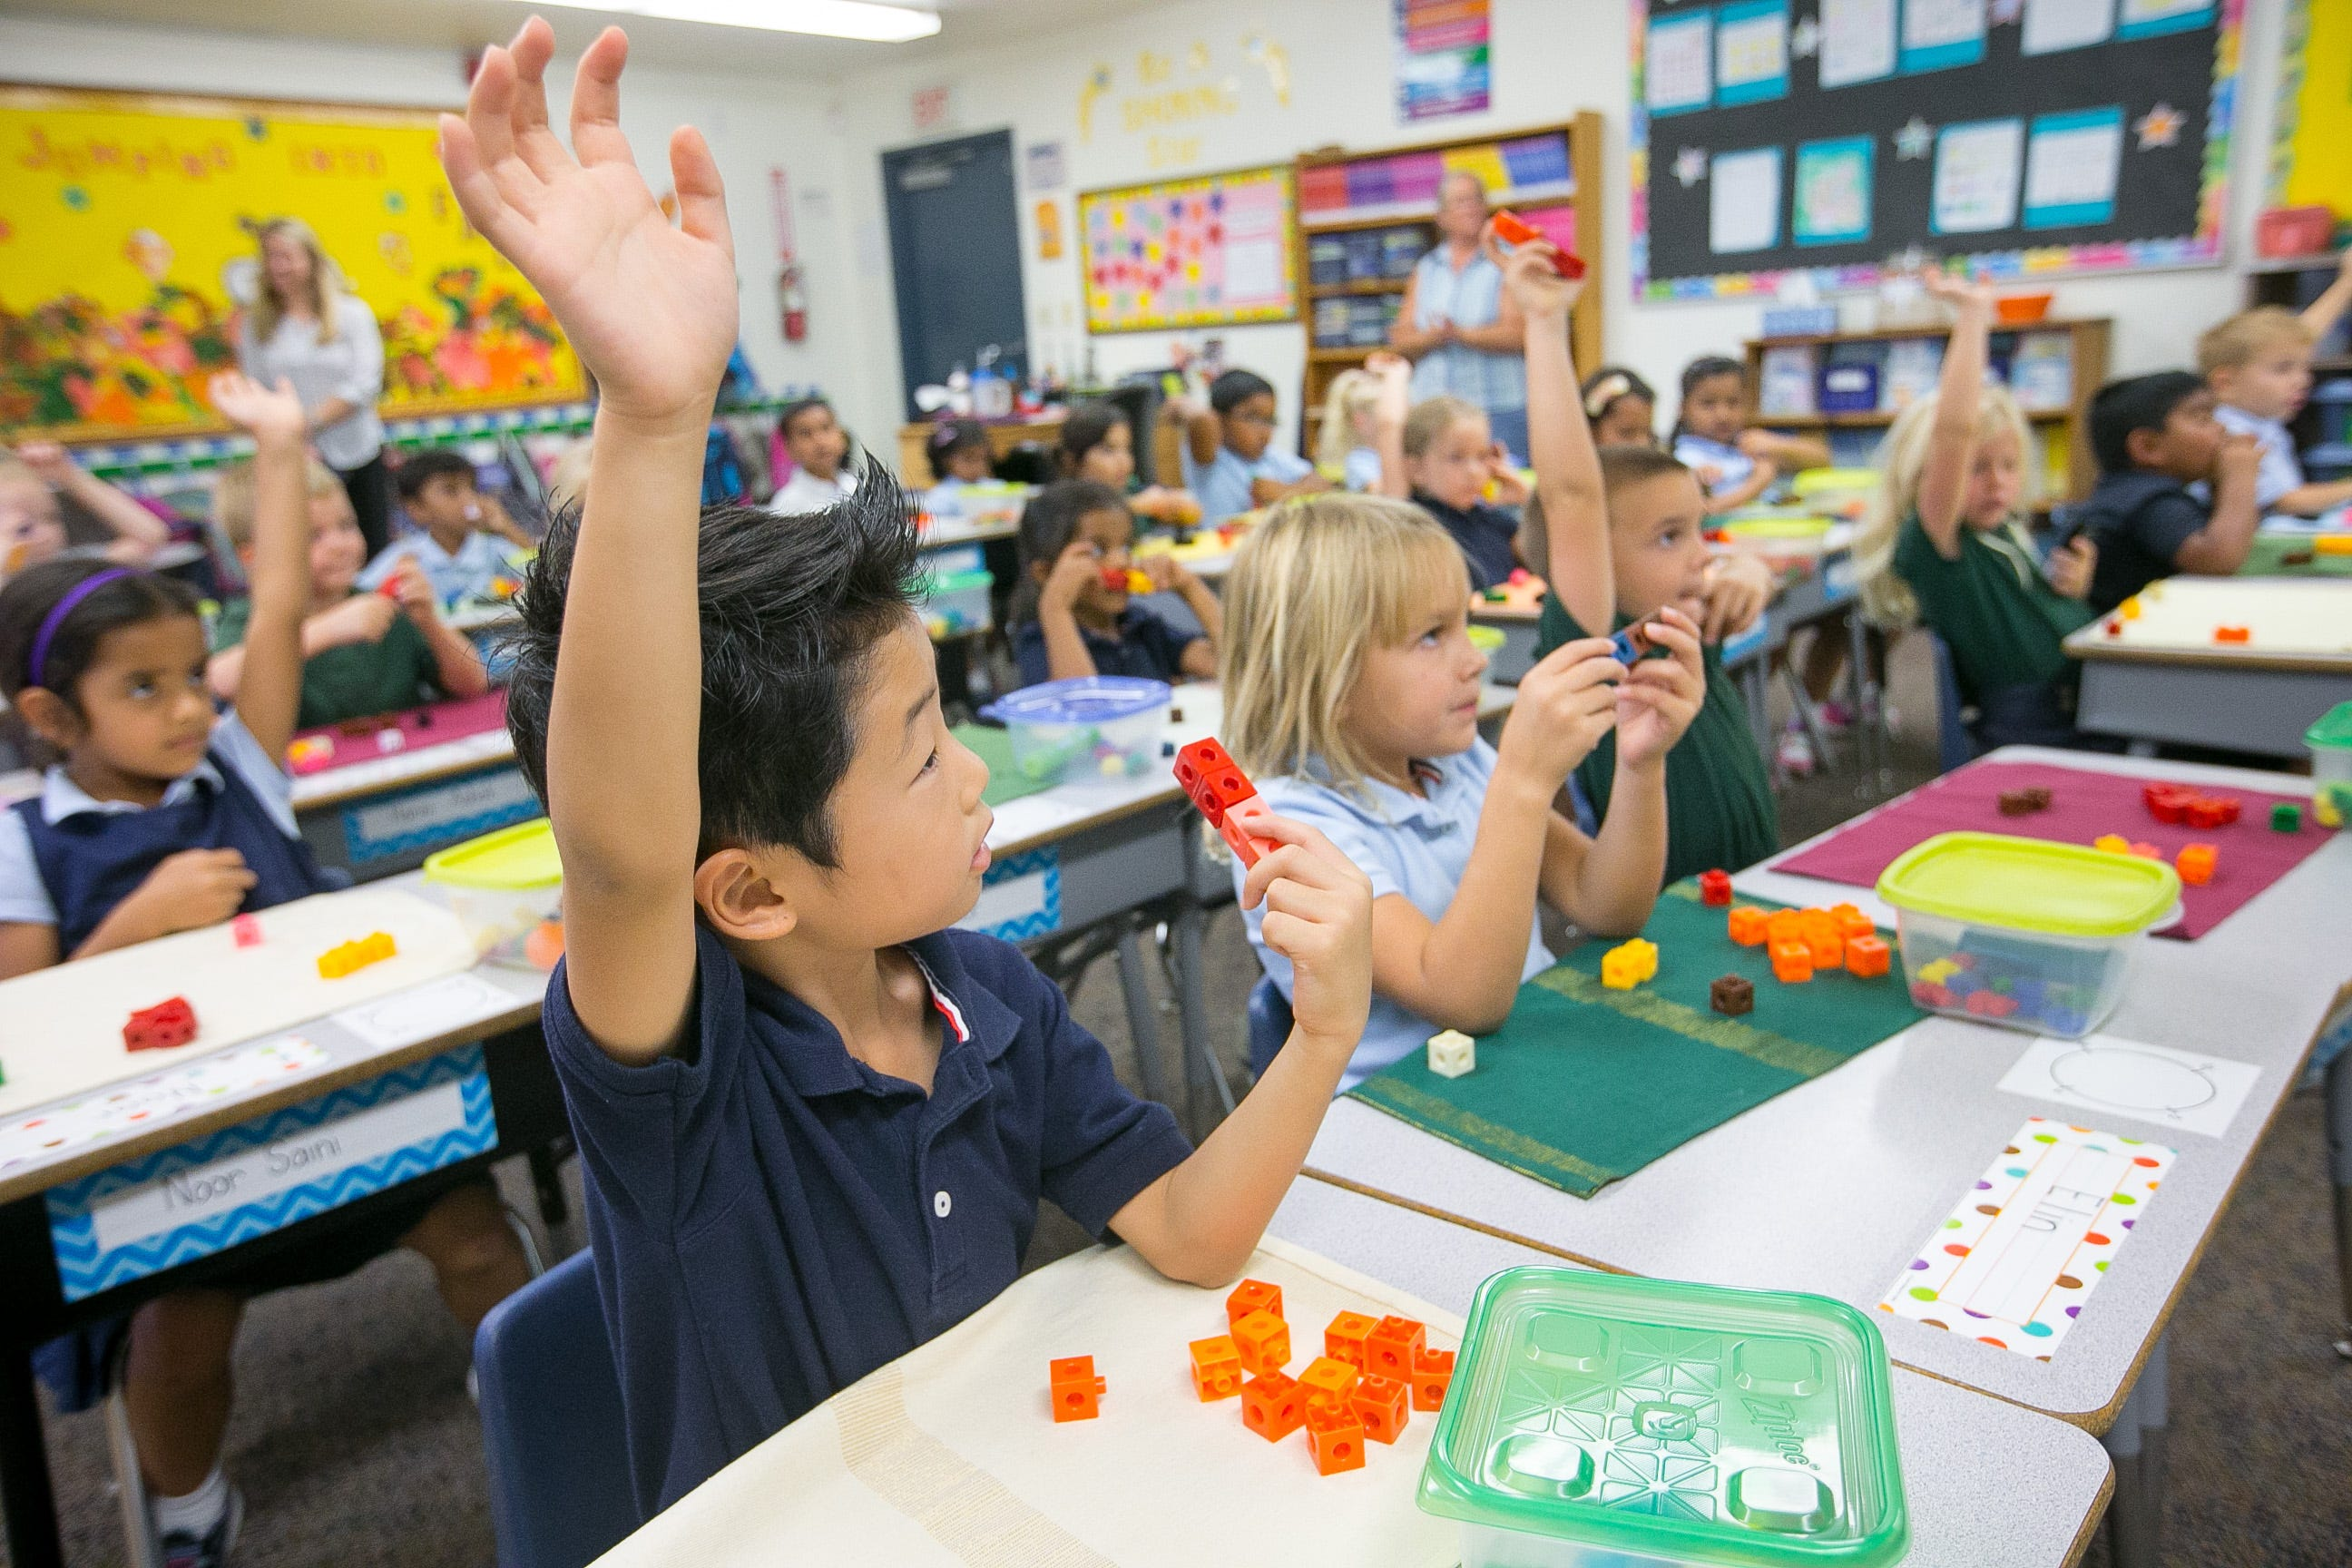 Putting Arizona Education Reform to the Test: School Choice and Early Education Expansion